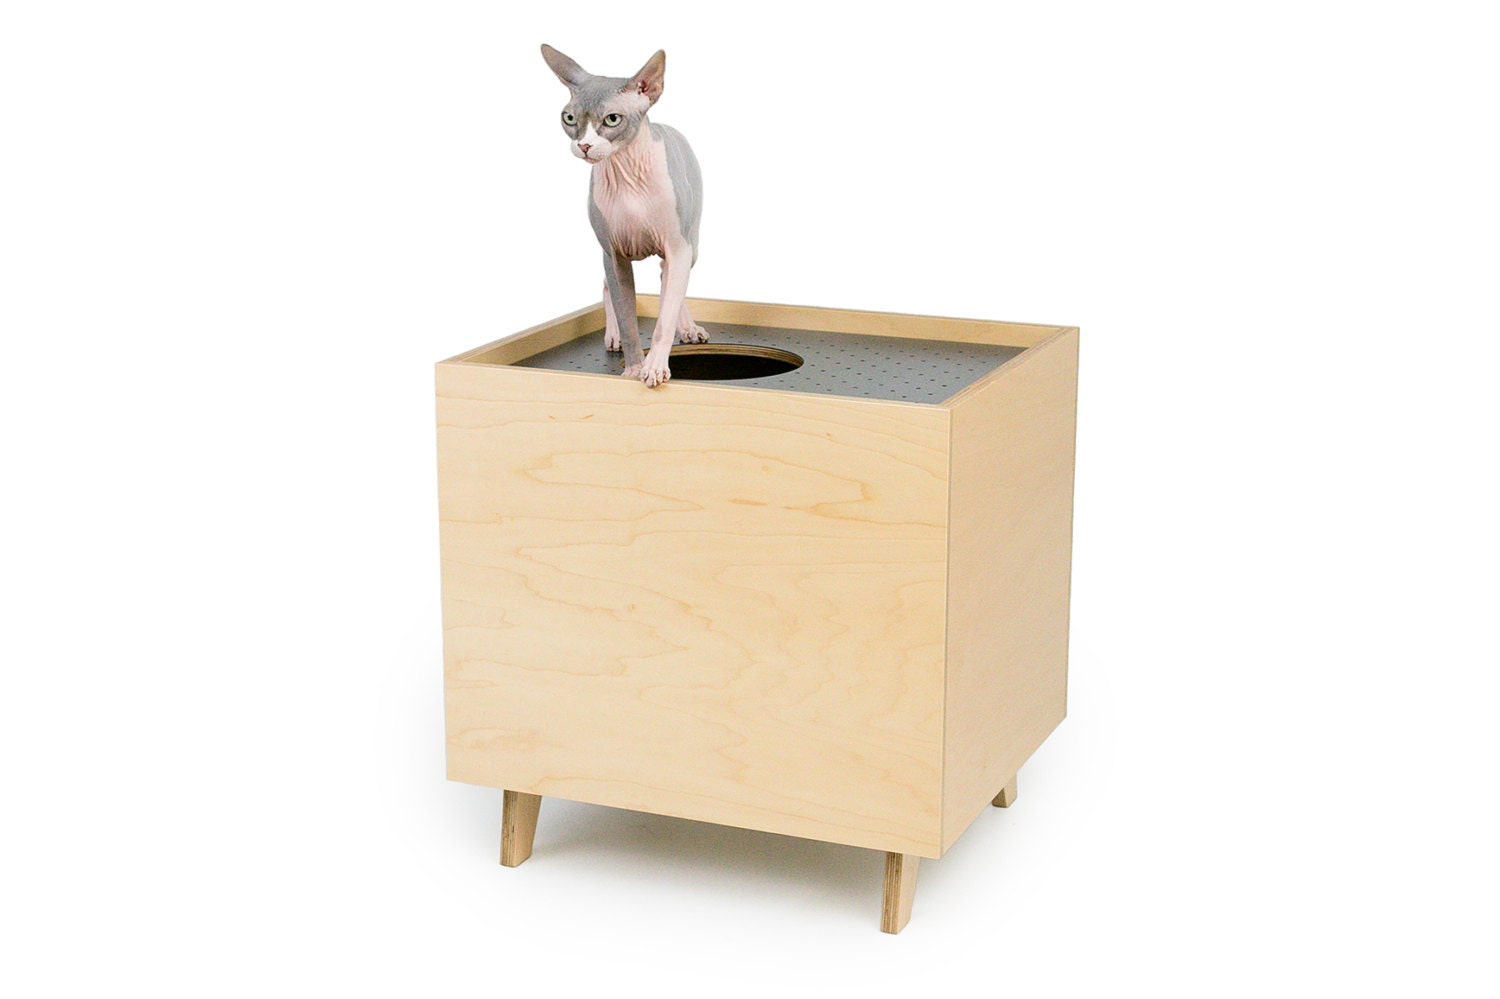 Modern Cat Litter Box Home Gt Cat Beds Crates Gear Furniture Home Gt Cat Beds Crates Gear